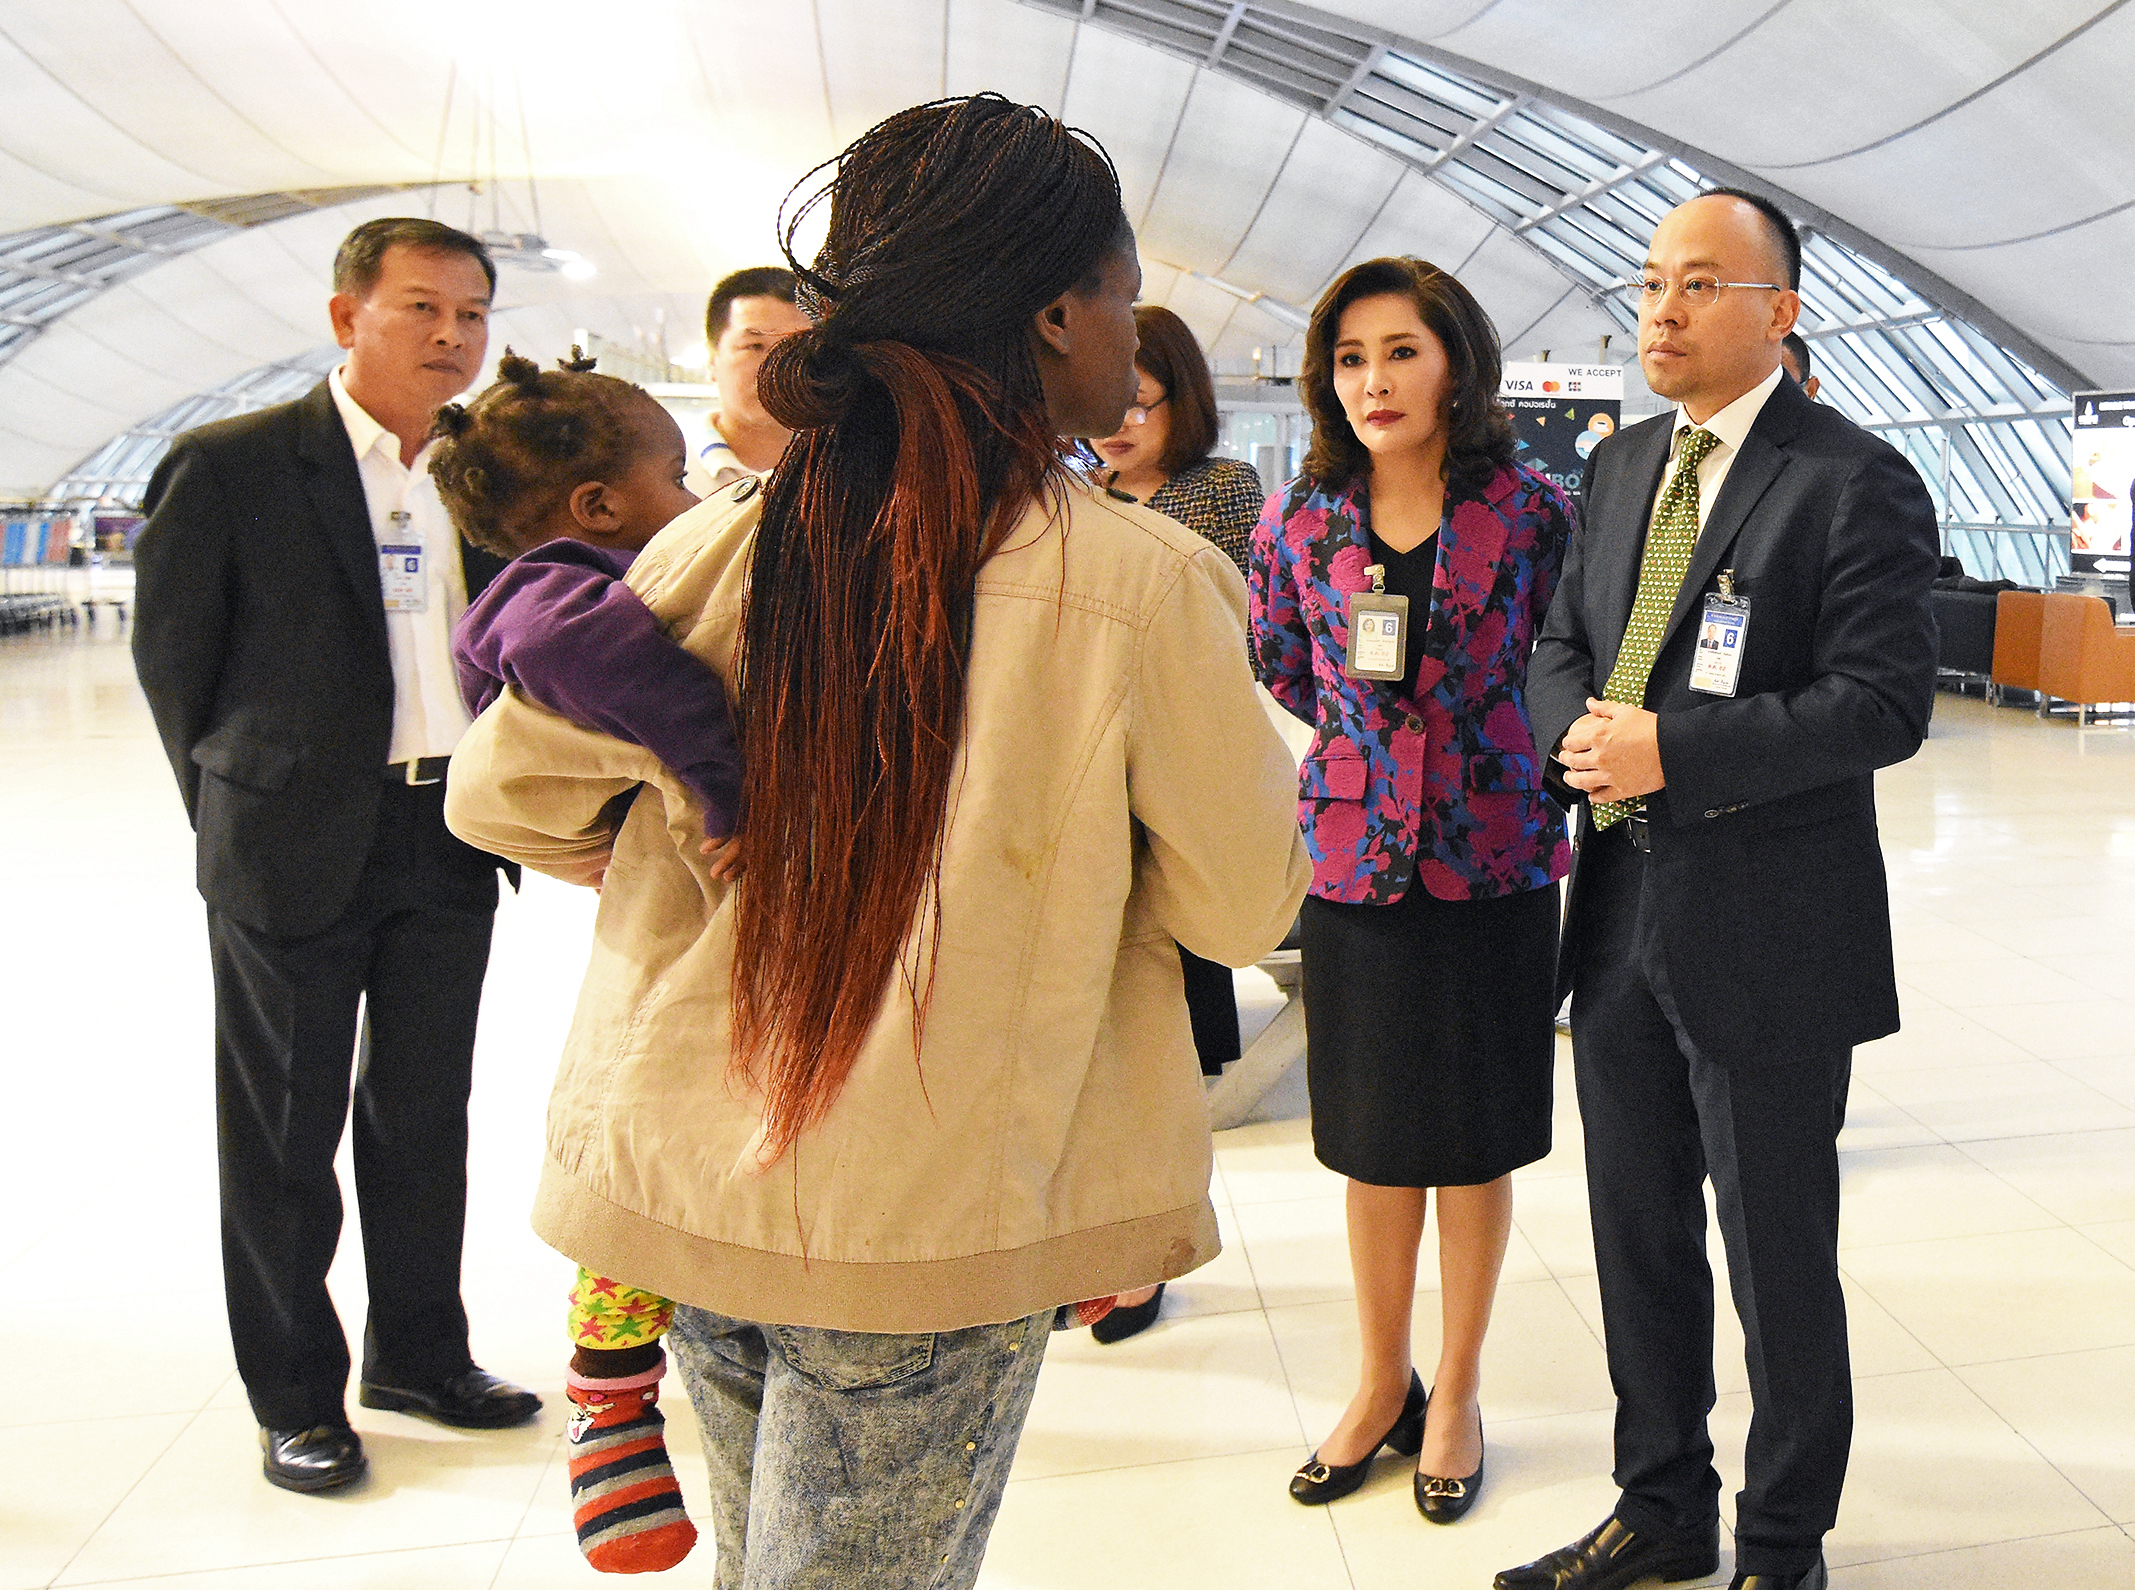 epa06408006 Thai airport officials talk to members of a Zimbabwean family that has been stranded for three months at Suvarnabhumi International Airport in Samut Prakan province, on the outskirts of Bangkok, Thailand, 27 December 2017 (issued 28 December 2017). Eight people of a family including four young children from Zimbabwe has been living in the Suvarnbhumi airport for three months as they awaiting their asylum pending process for refugee status from the United Nation.  EPA-EFE/STR THAILAND OUT